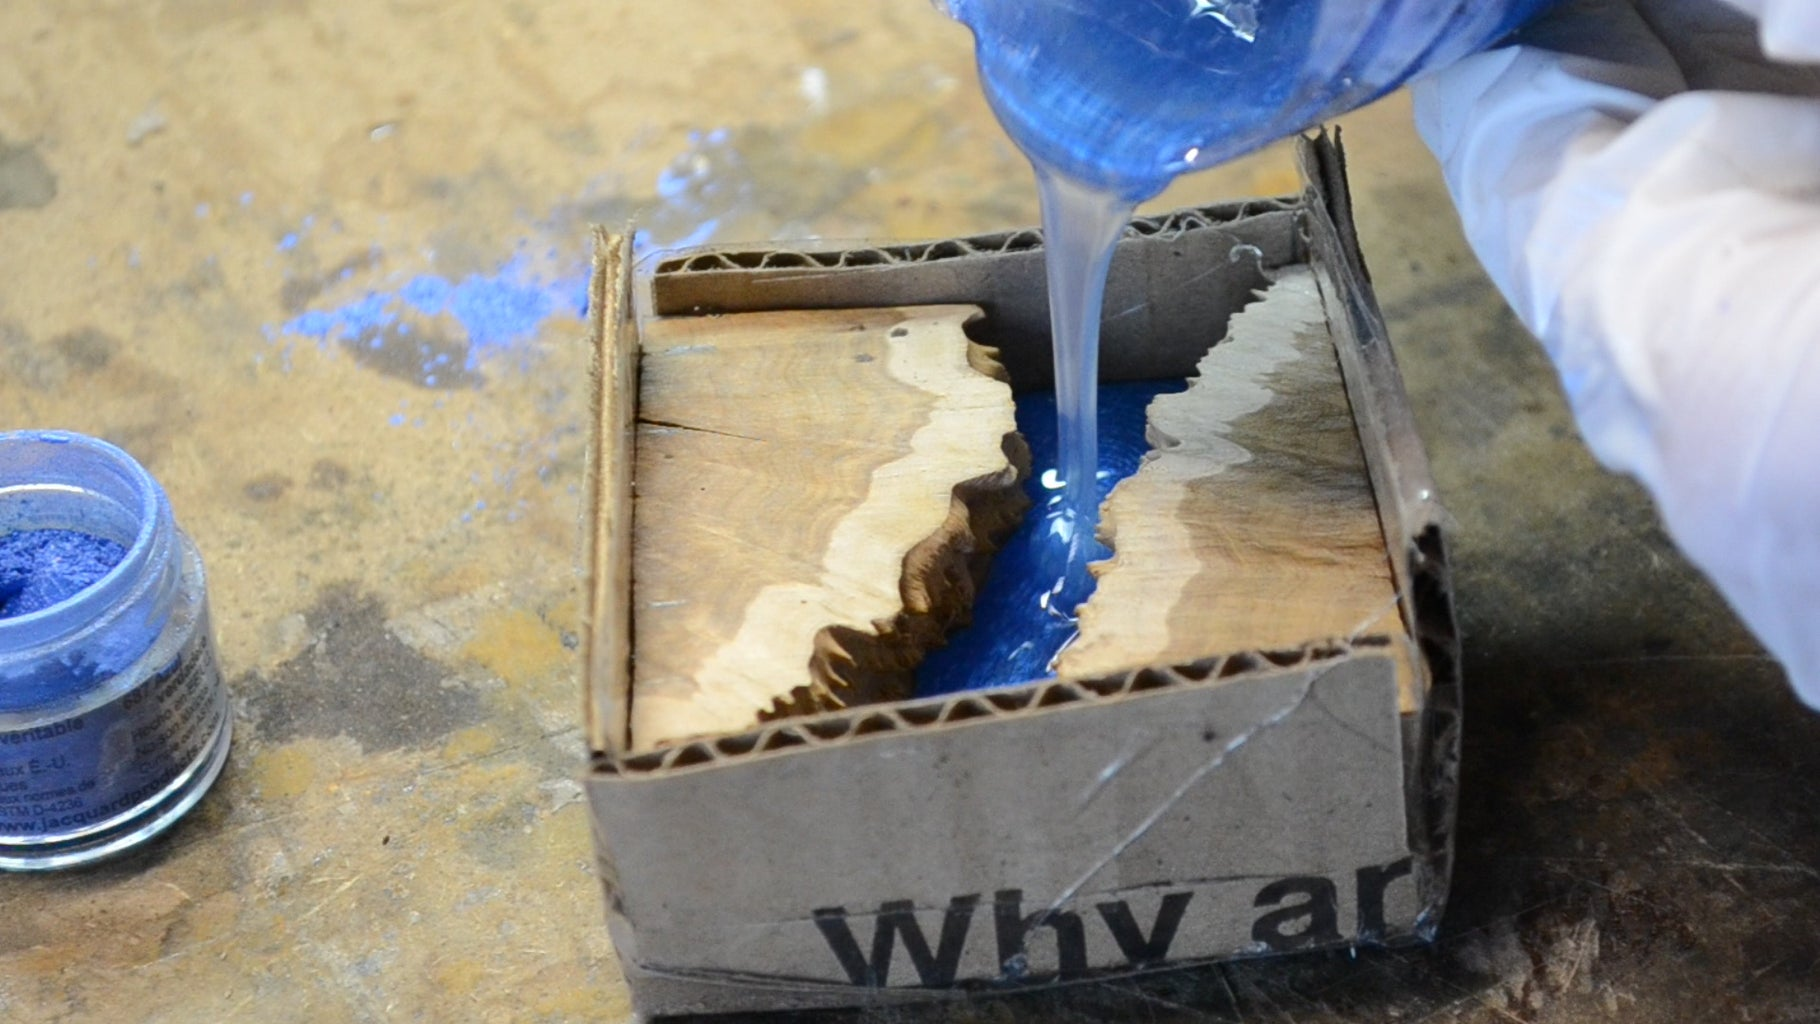 Pouring the Resin